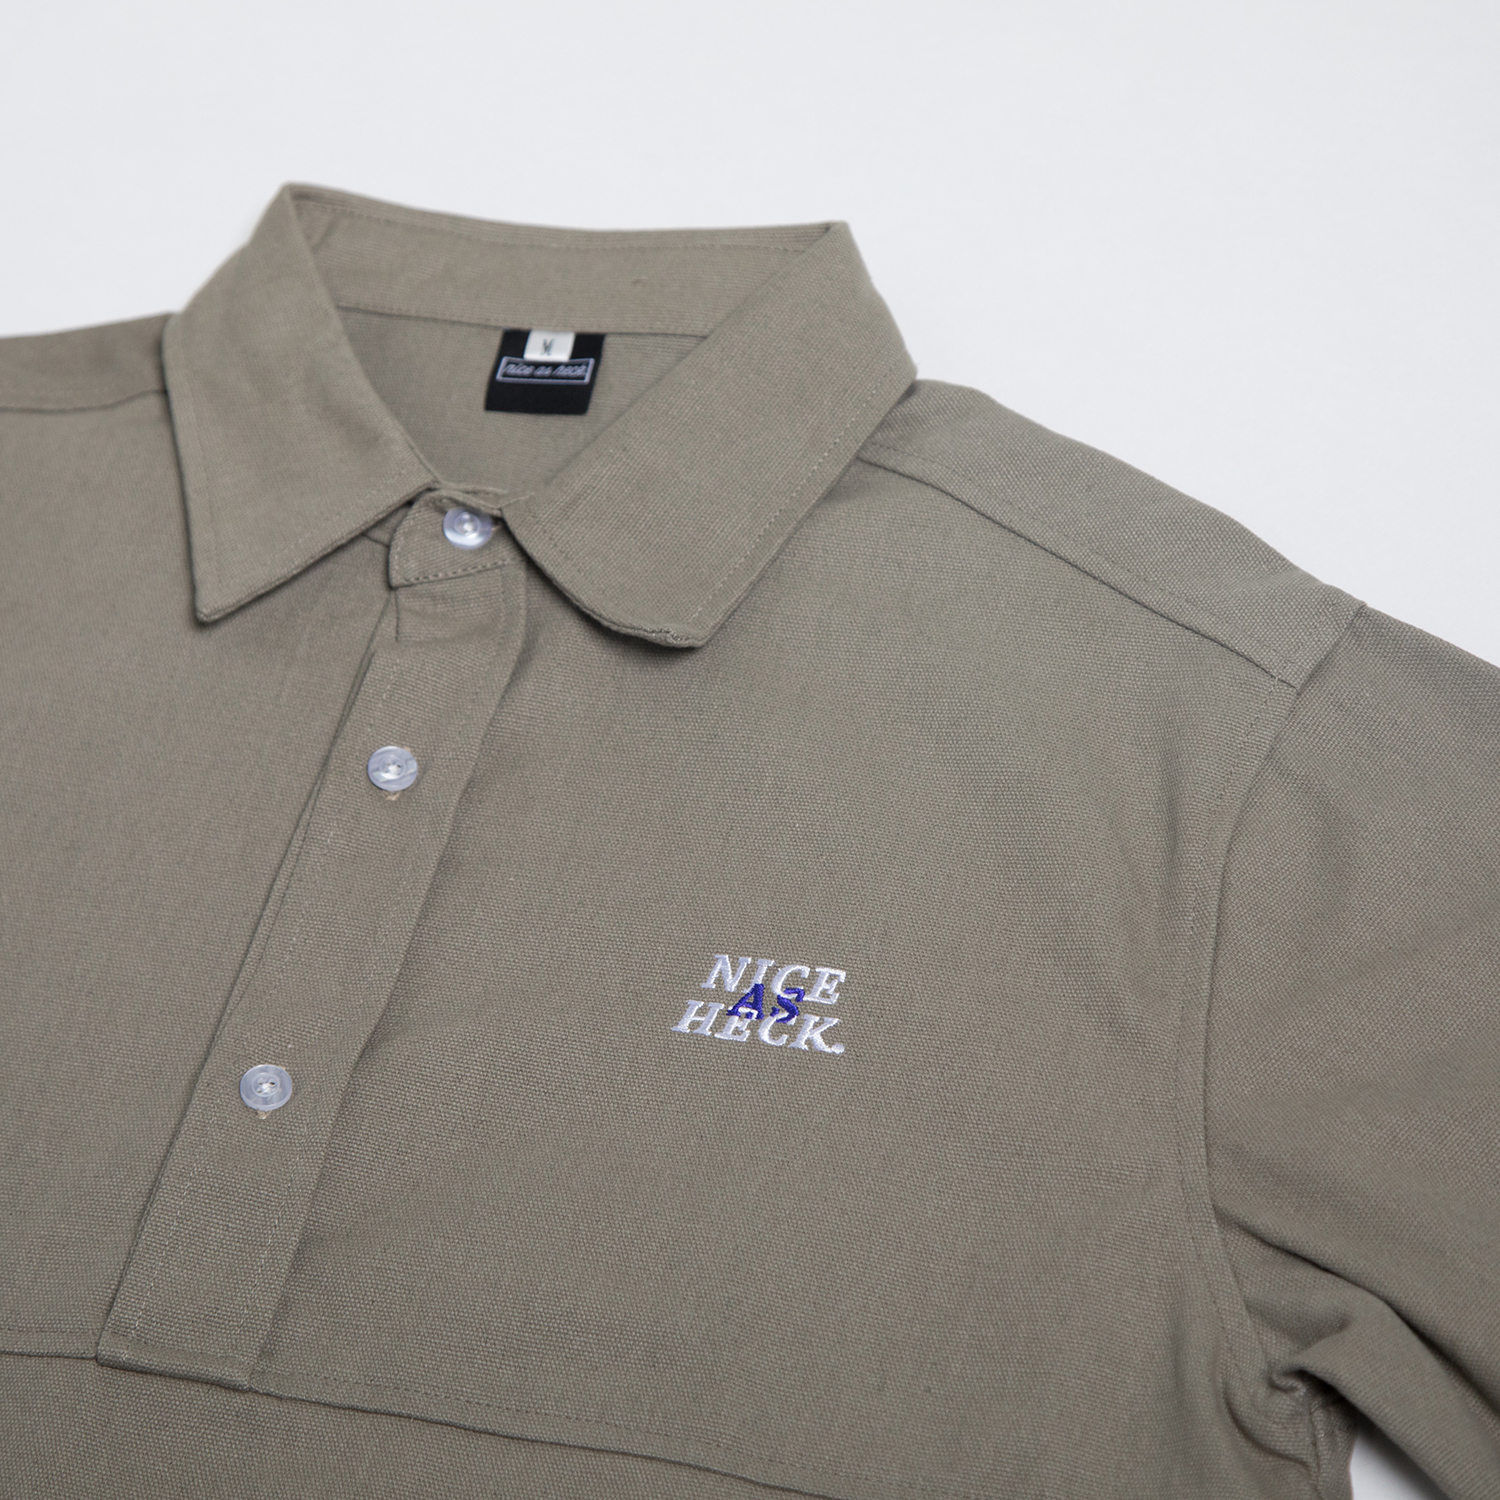 down and dirty workshirt close up